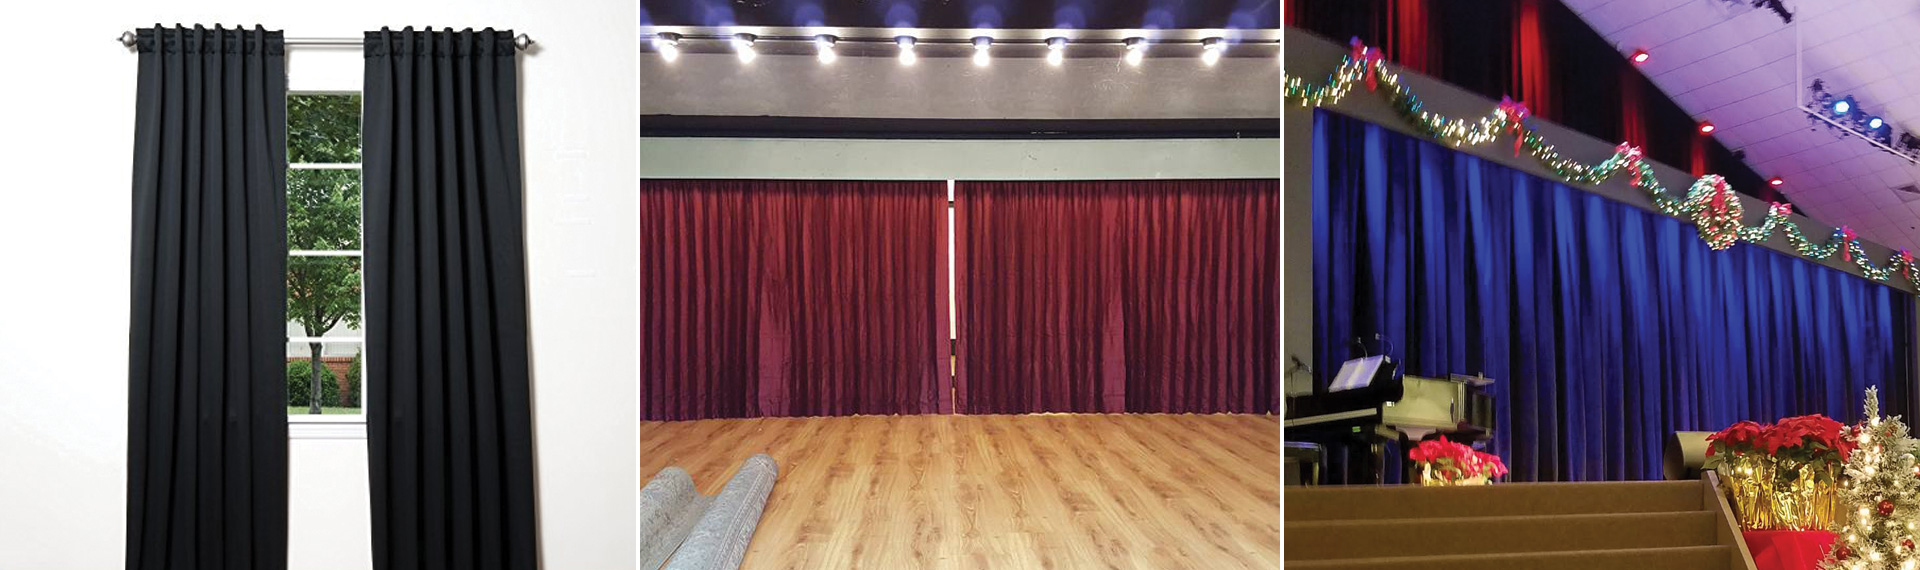 Custom Sewn, Luxury Cotton Velvet Curtains Sarasota FL